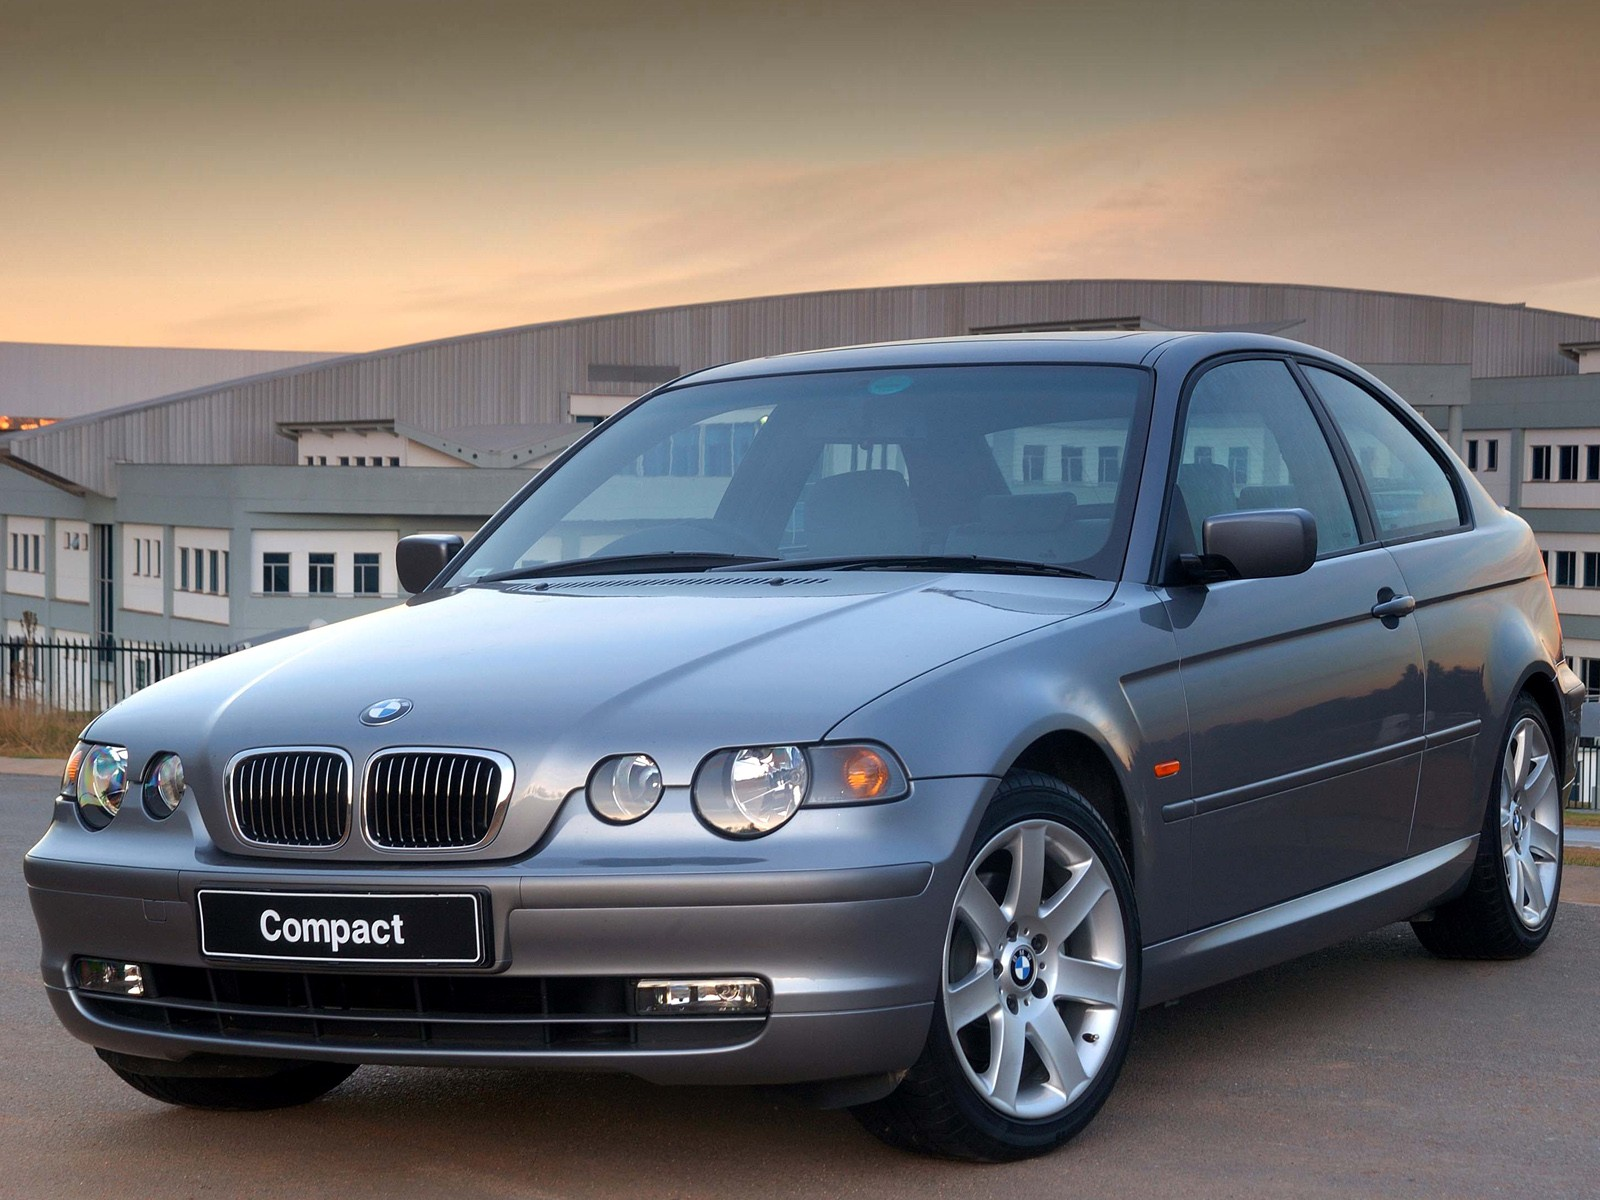 bmw 3 series compact e46 specs 2001 2002 2003 2004. Black Bedroom Furniture Sets. Home Design Ideas